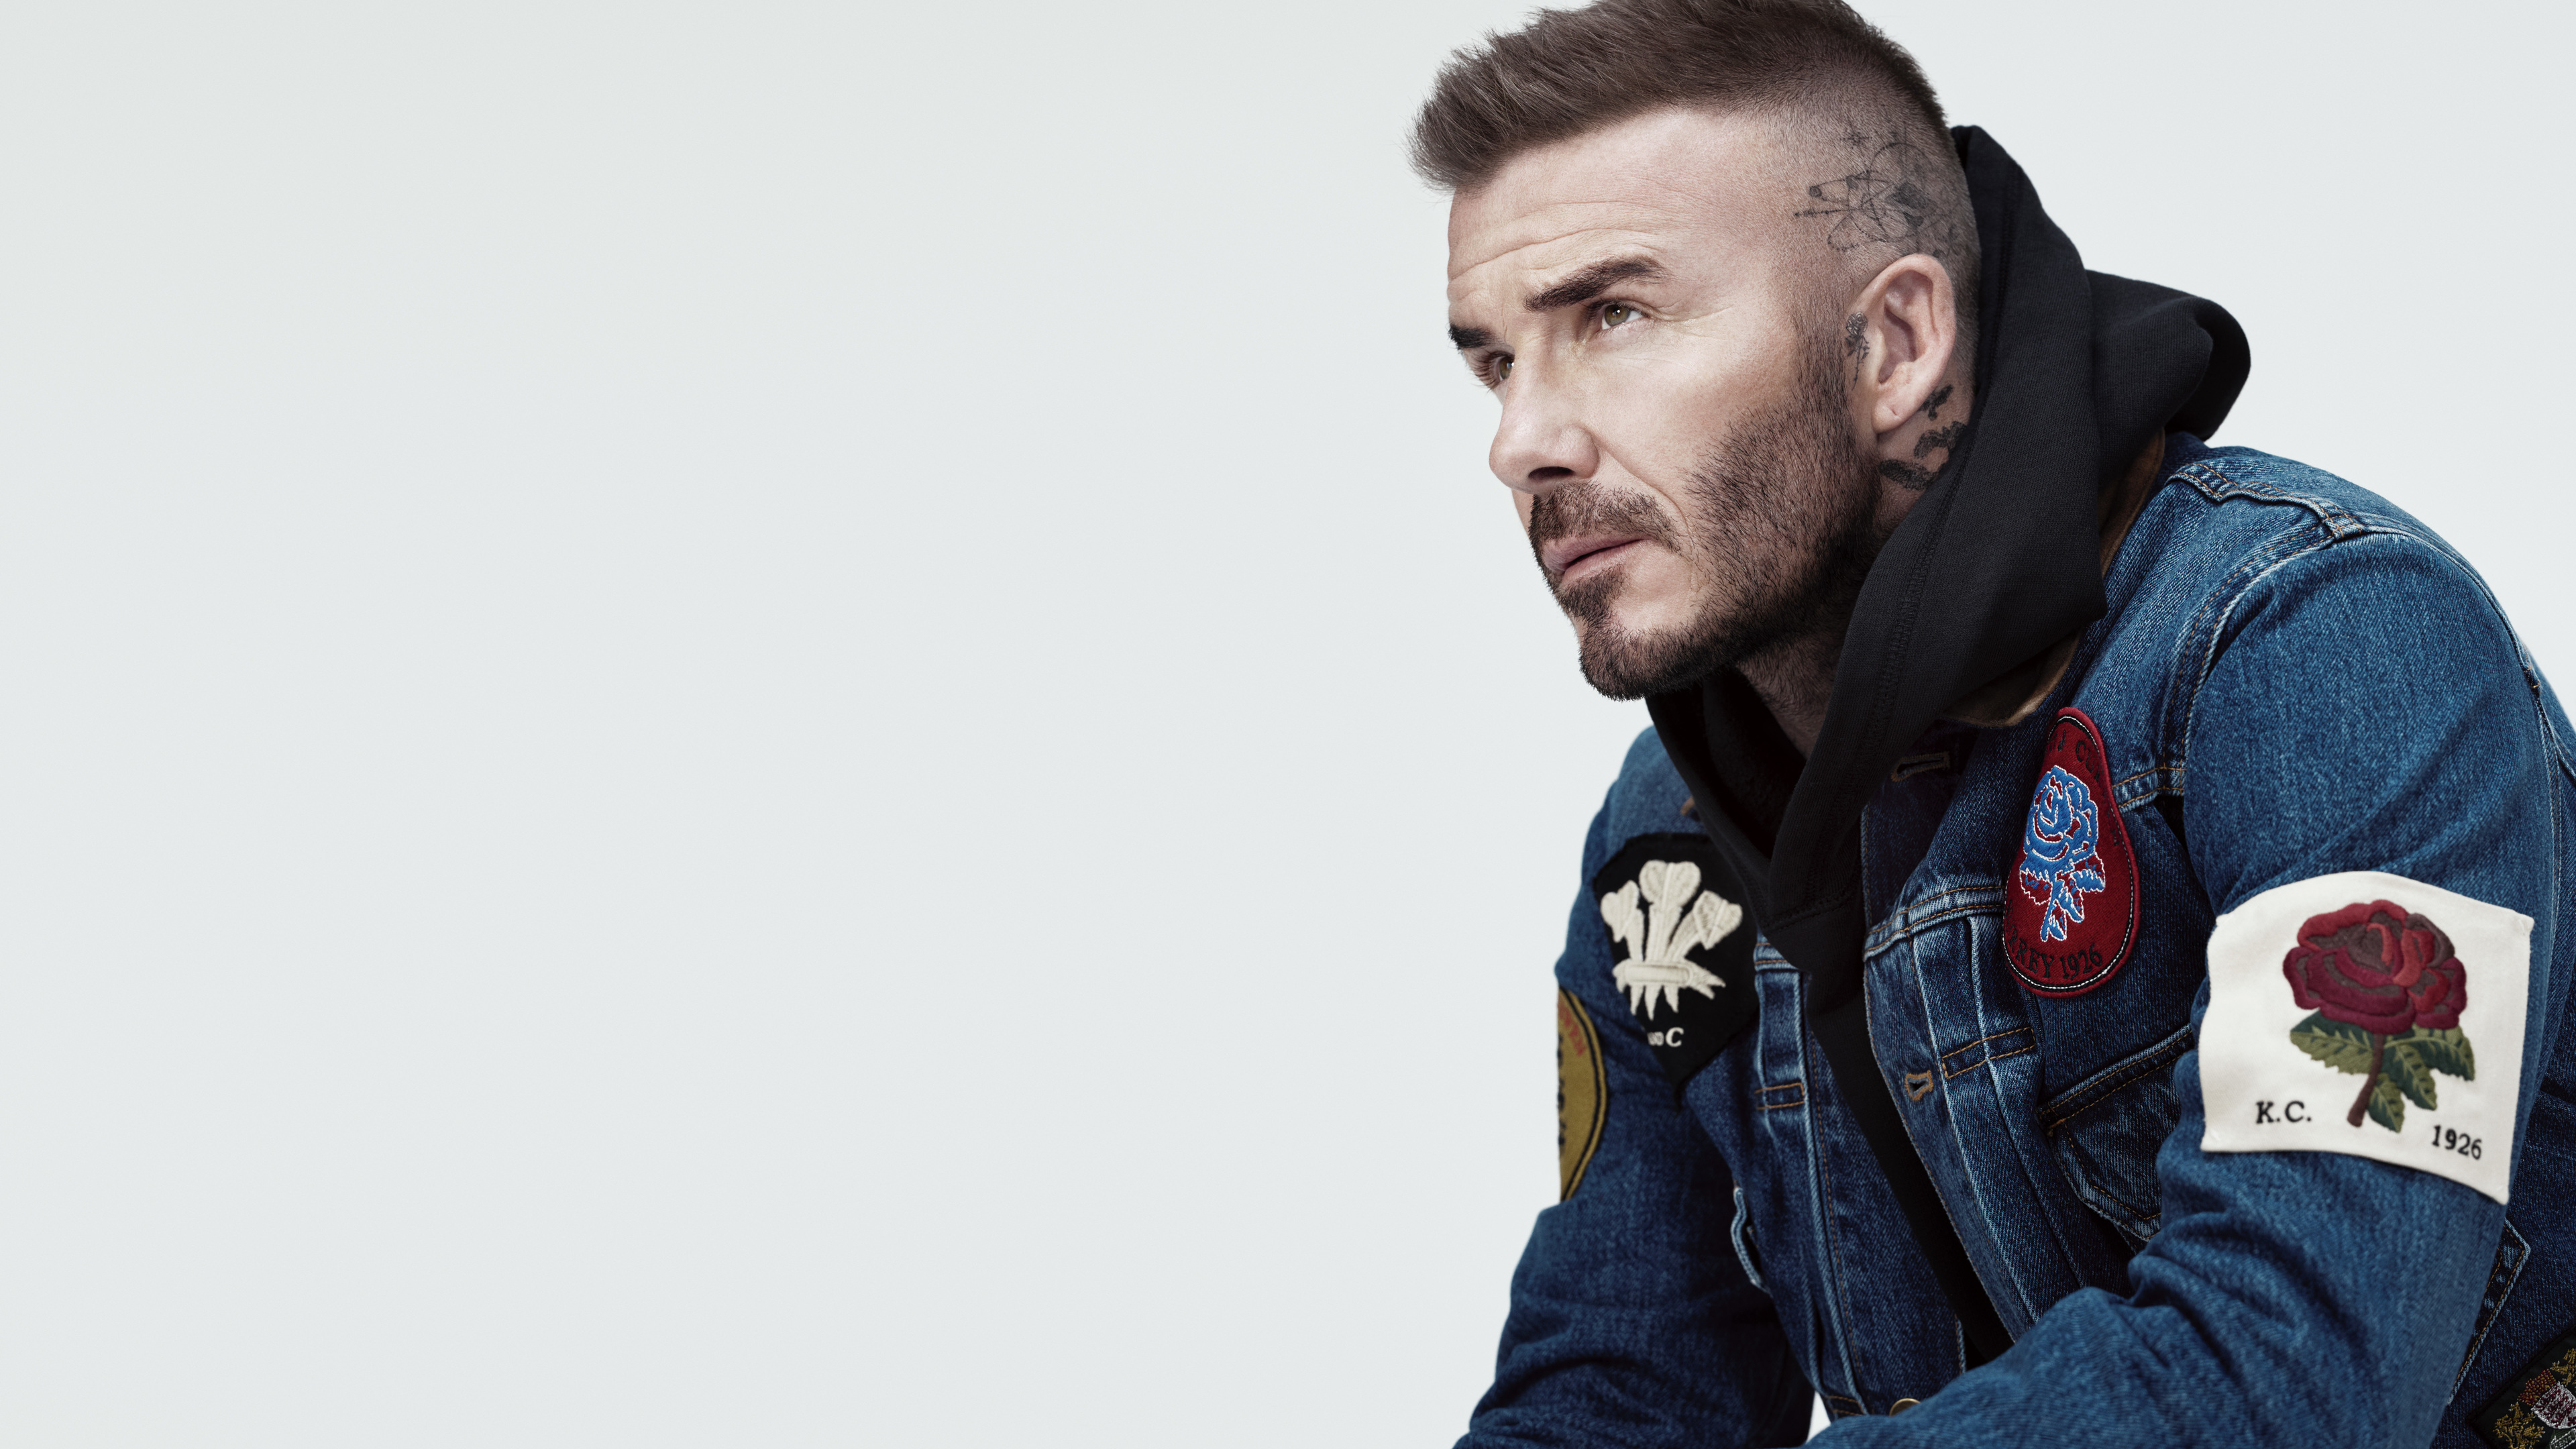 david beckham kent and curwen 2019 4k 1547938889 - David Beckham KENT And CURWEN 2019 4k - sports wallpapers, male celebrities wallpapers, hd-wallpapers, david beckham wallpapers, boys wallpapers, 4k-wallpapers